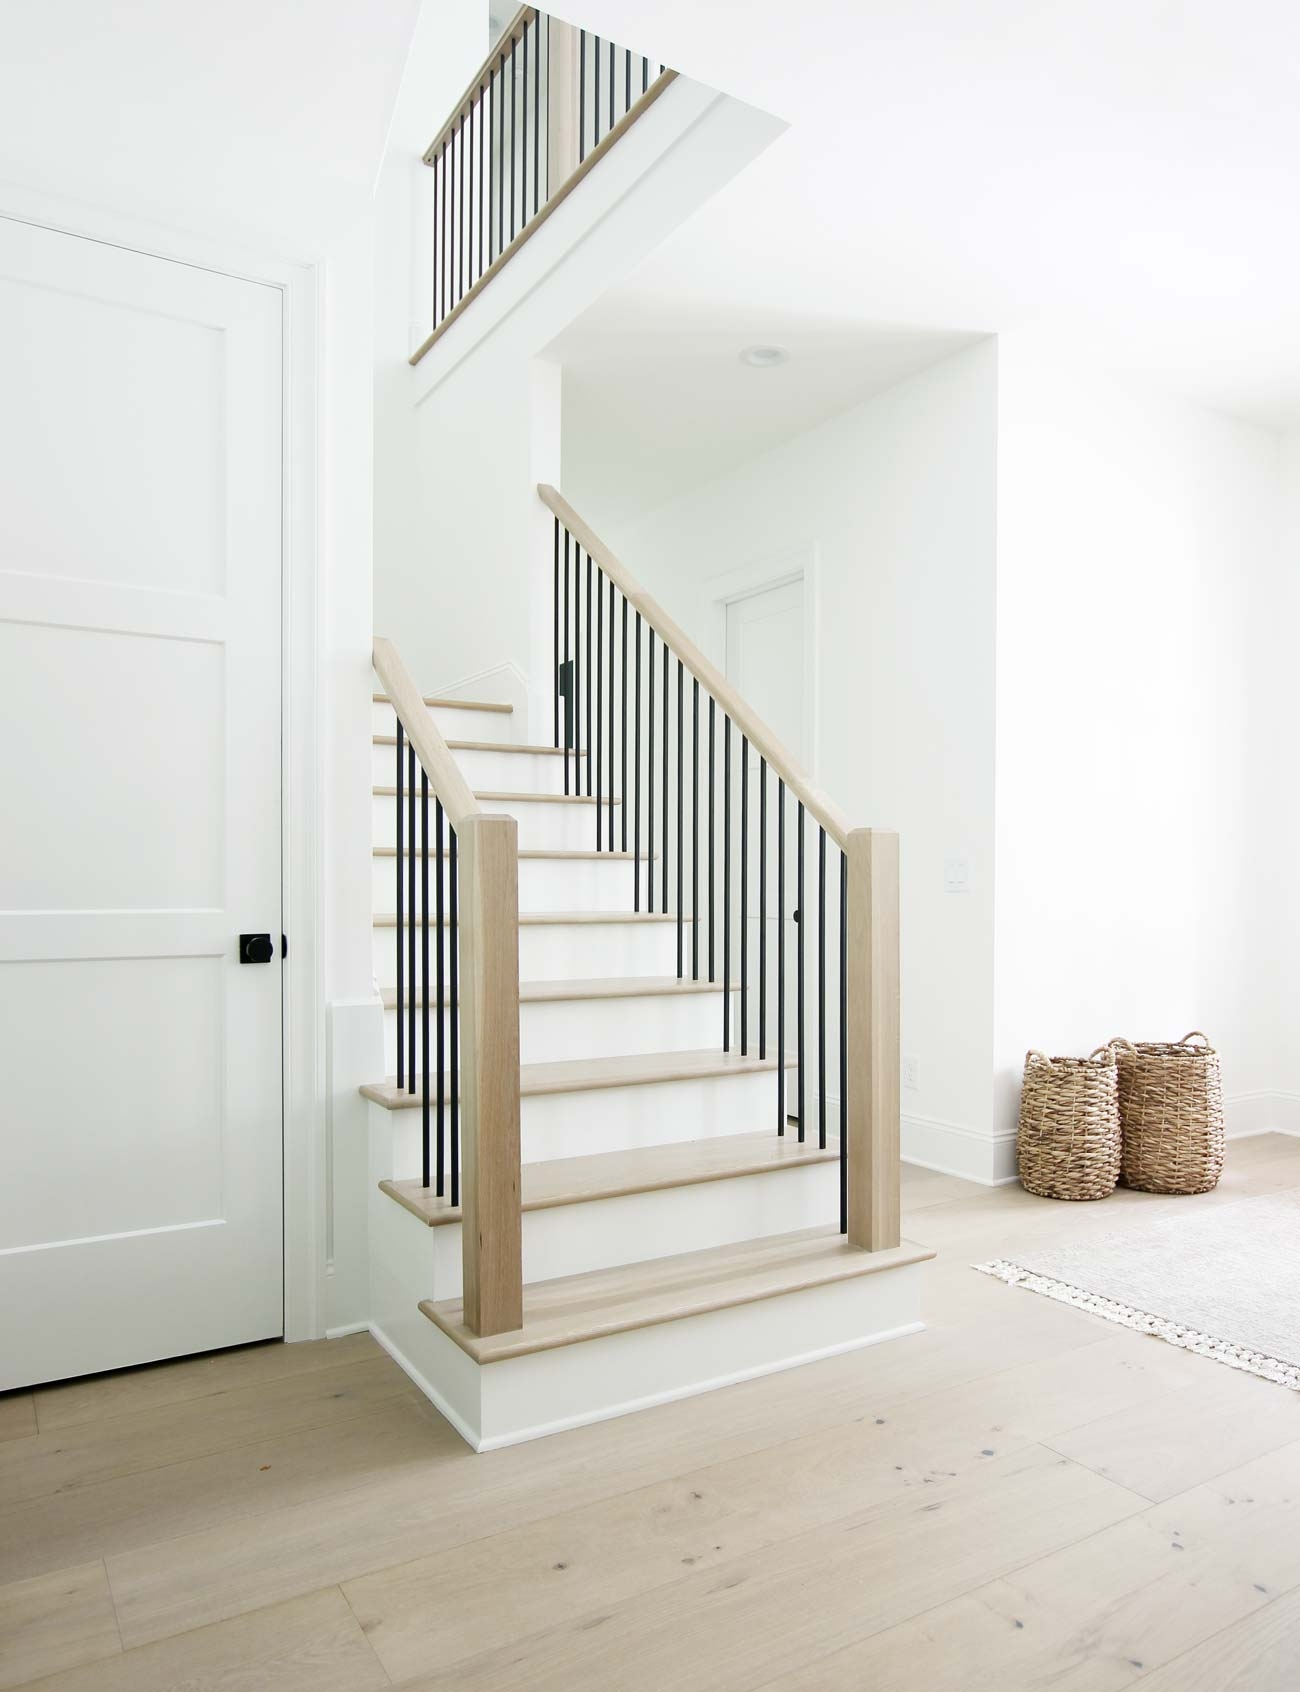 How To Match Solid Stair Treads To Prefinished Hardwood Flooring | Hardwood Floor Stair Treads | Wooden | Hand Scraped | Redwood | Pergo Floor | Laminate Flooring